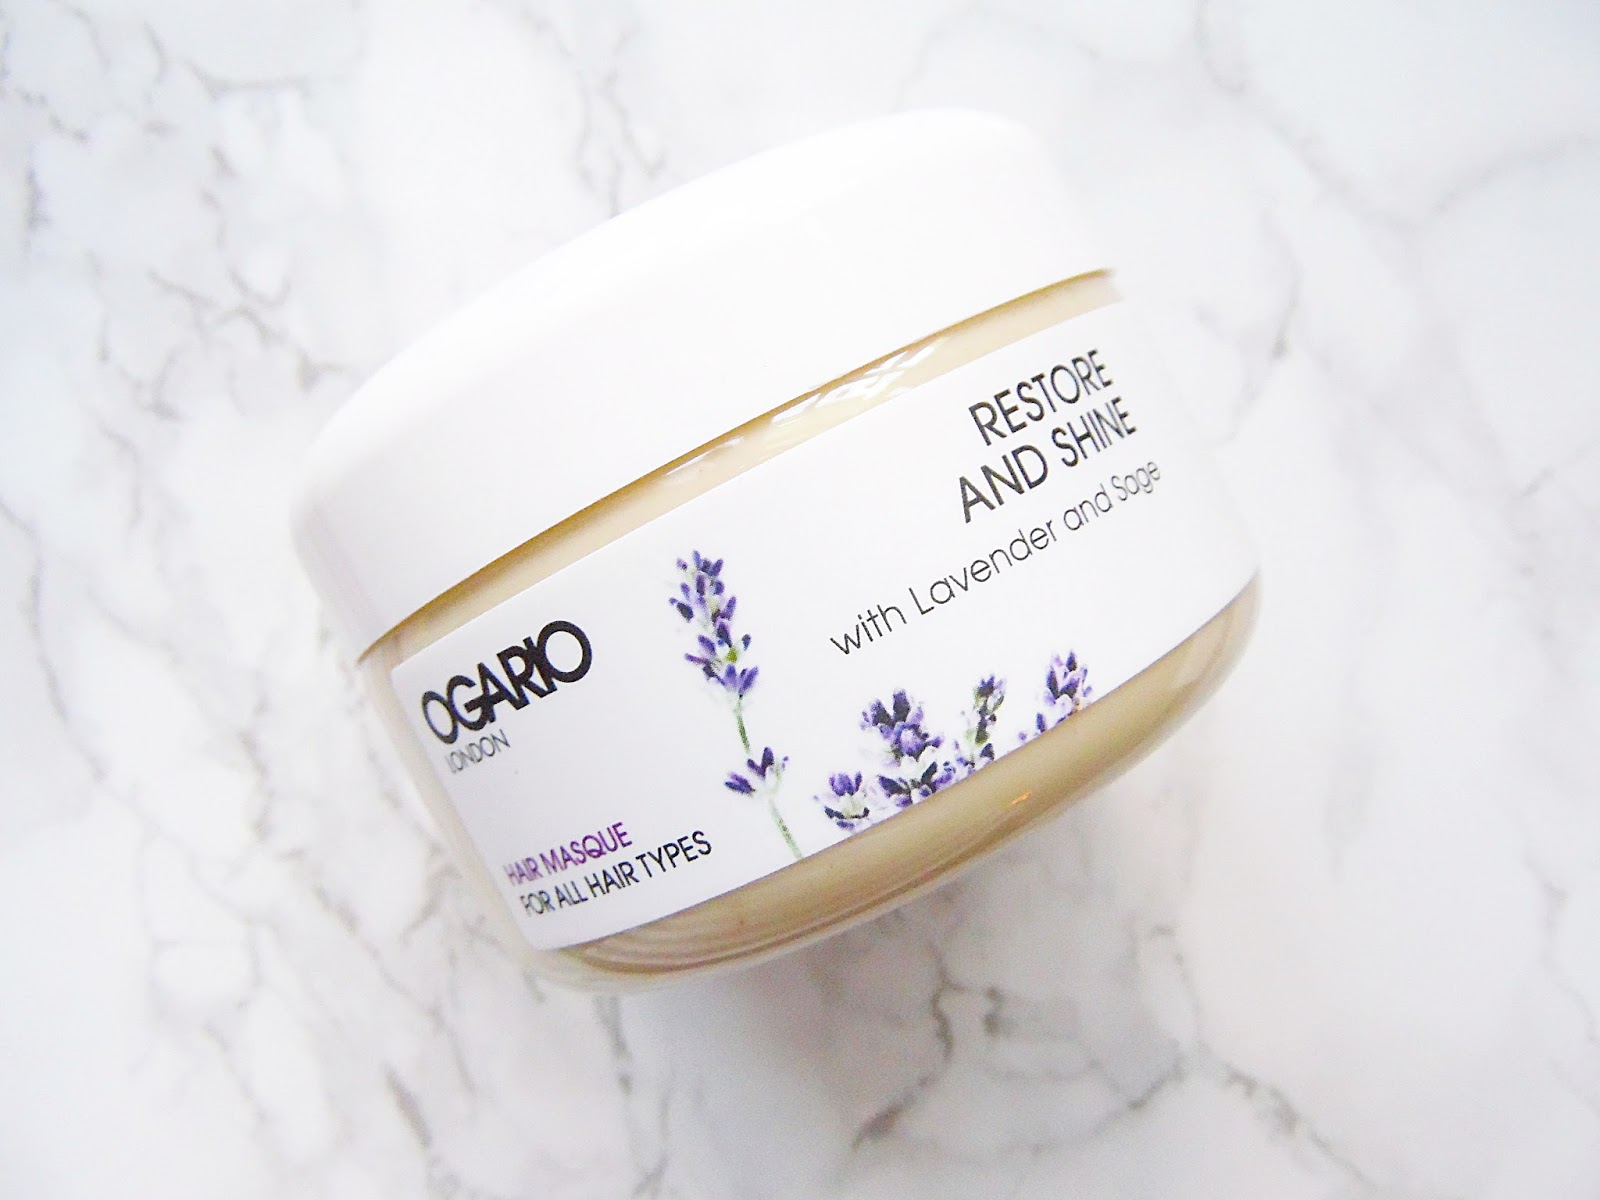 Ogario Restore & Shine Hair Masque